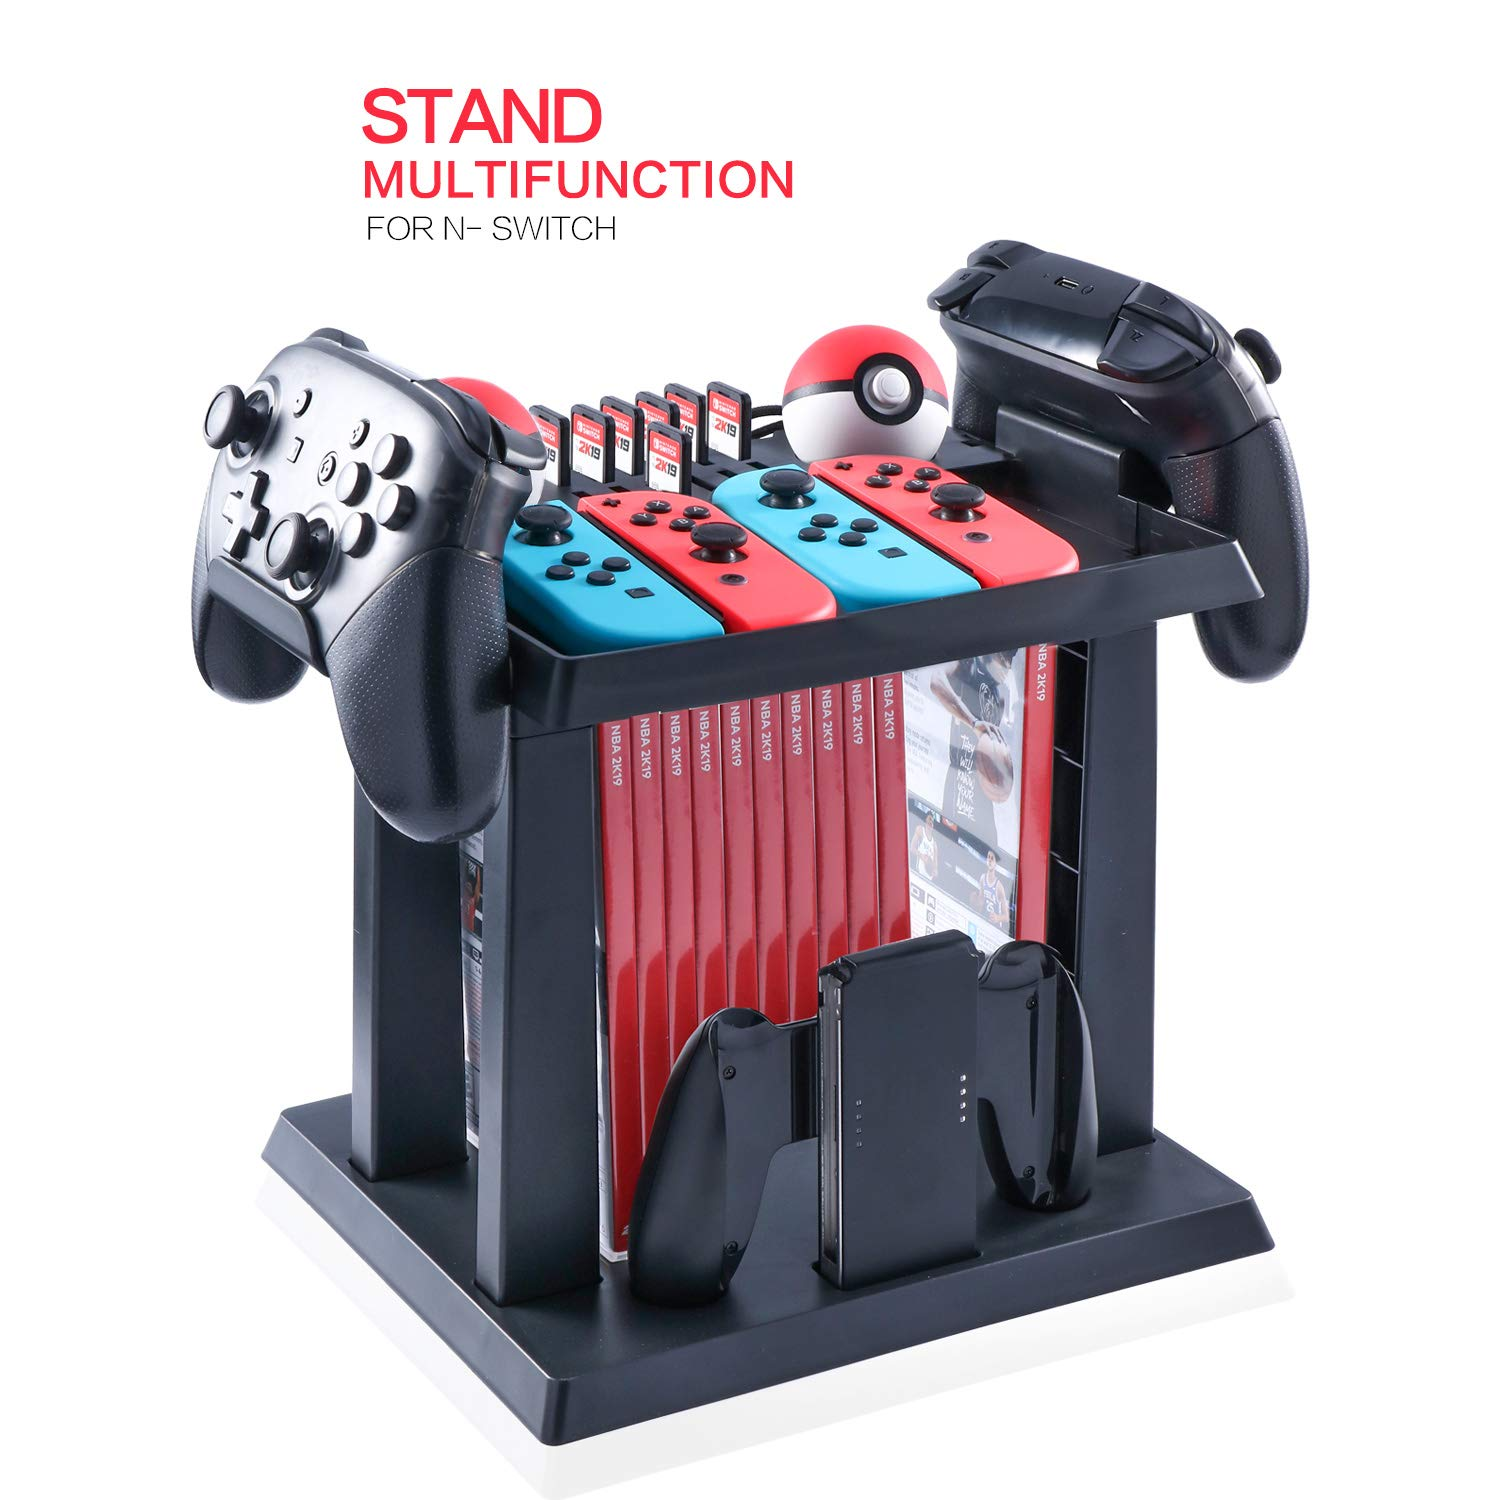 Storage Rack for Nintendo Switch Console Bundle, Storage Station Holder for Nintendo Switch Accessories and 2 Poke Ball Plus Controllers by HEATFUN